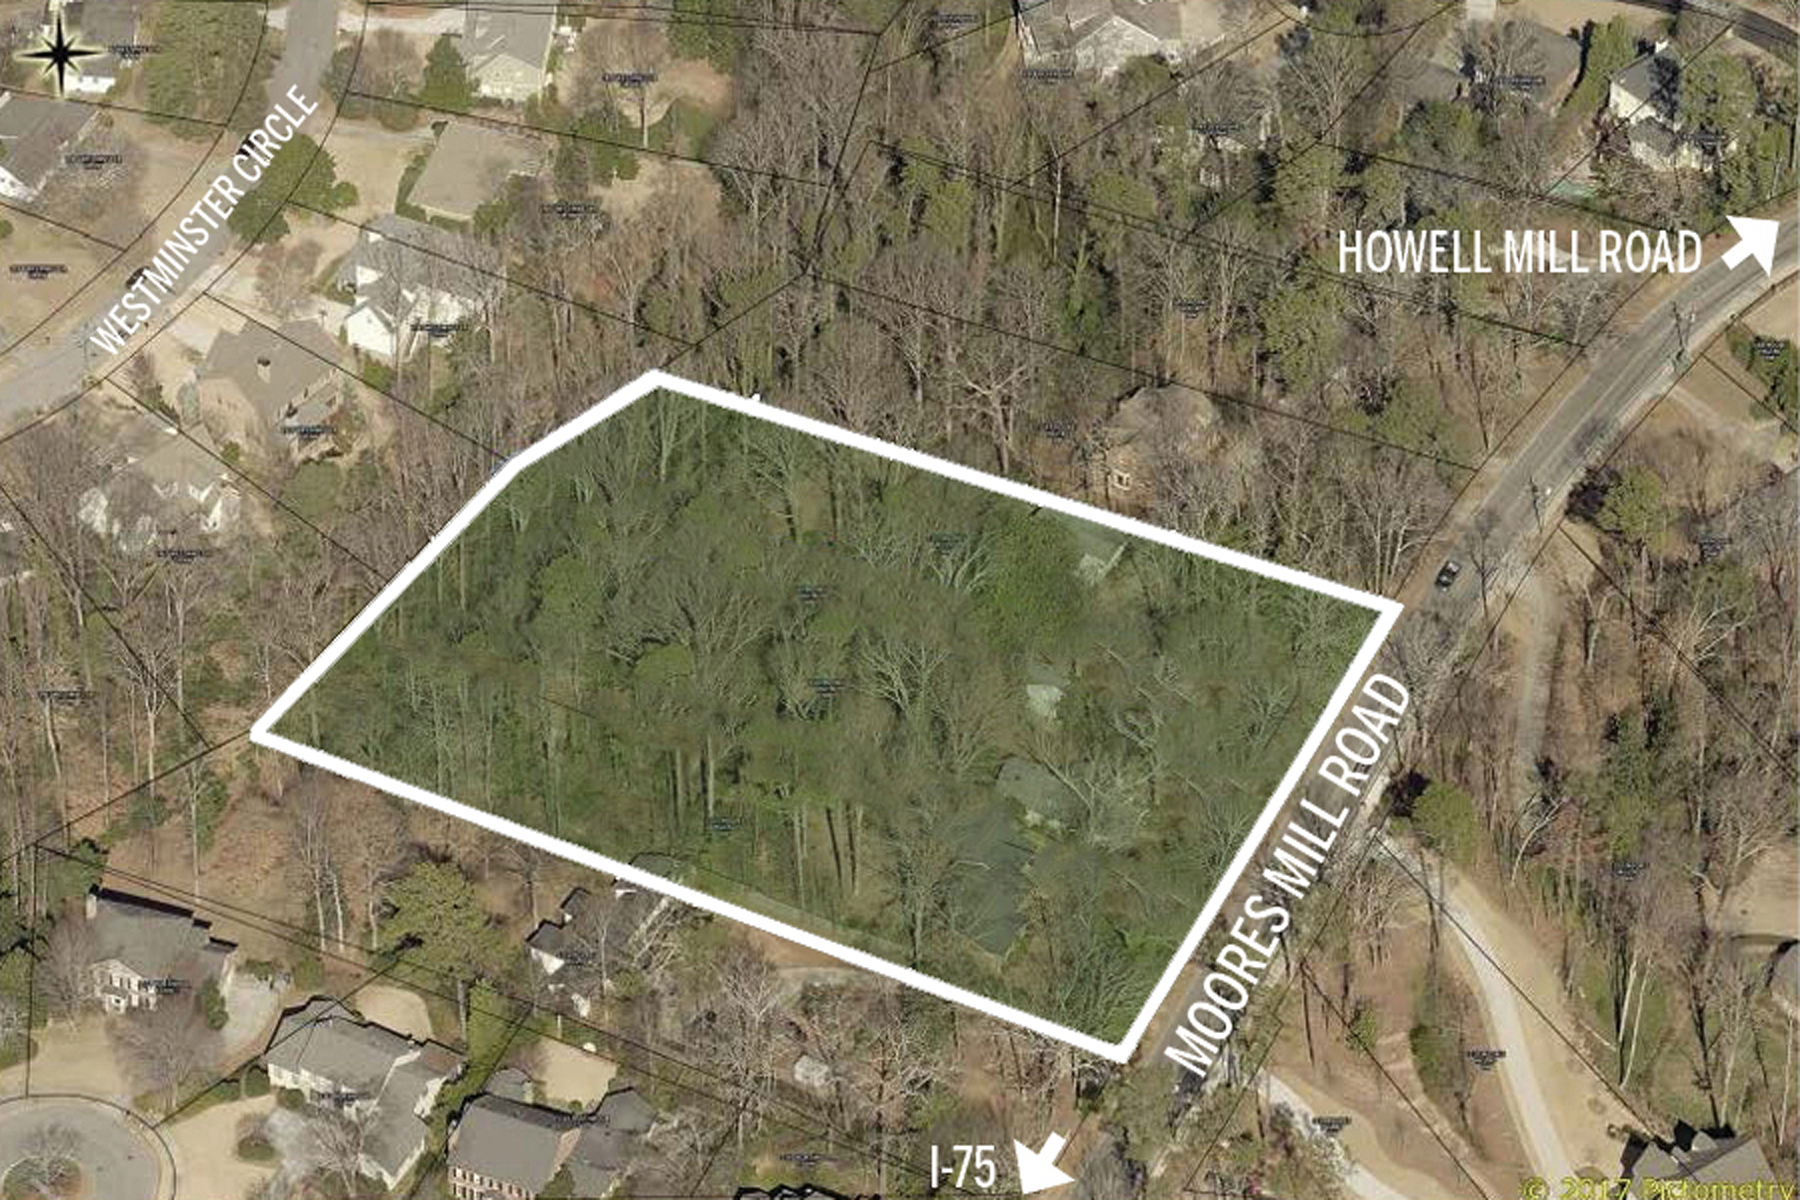 Terreno por un Venta en Assemblage - Potential For 5-6 Lots 1101 Moores Mill Road NW Atlanta, Georgia 30327 Estados Unidos